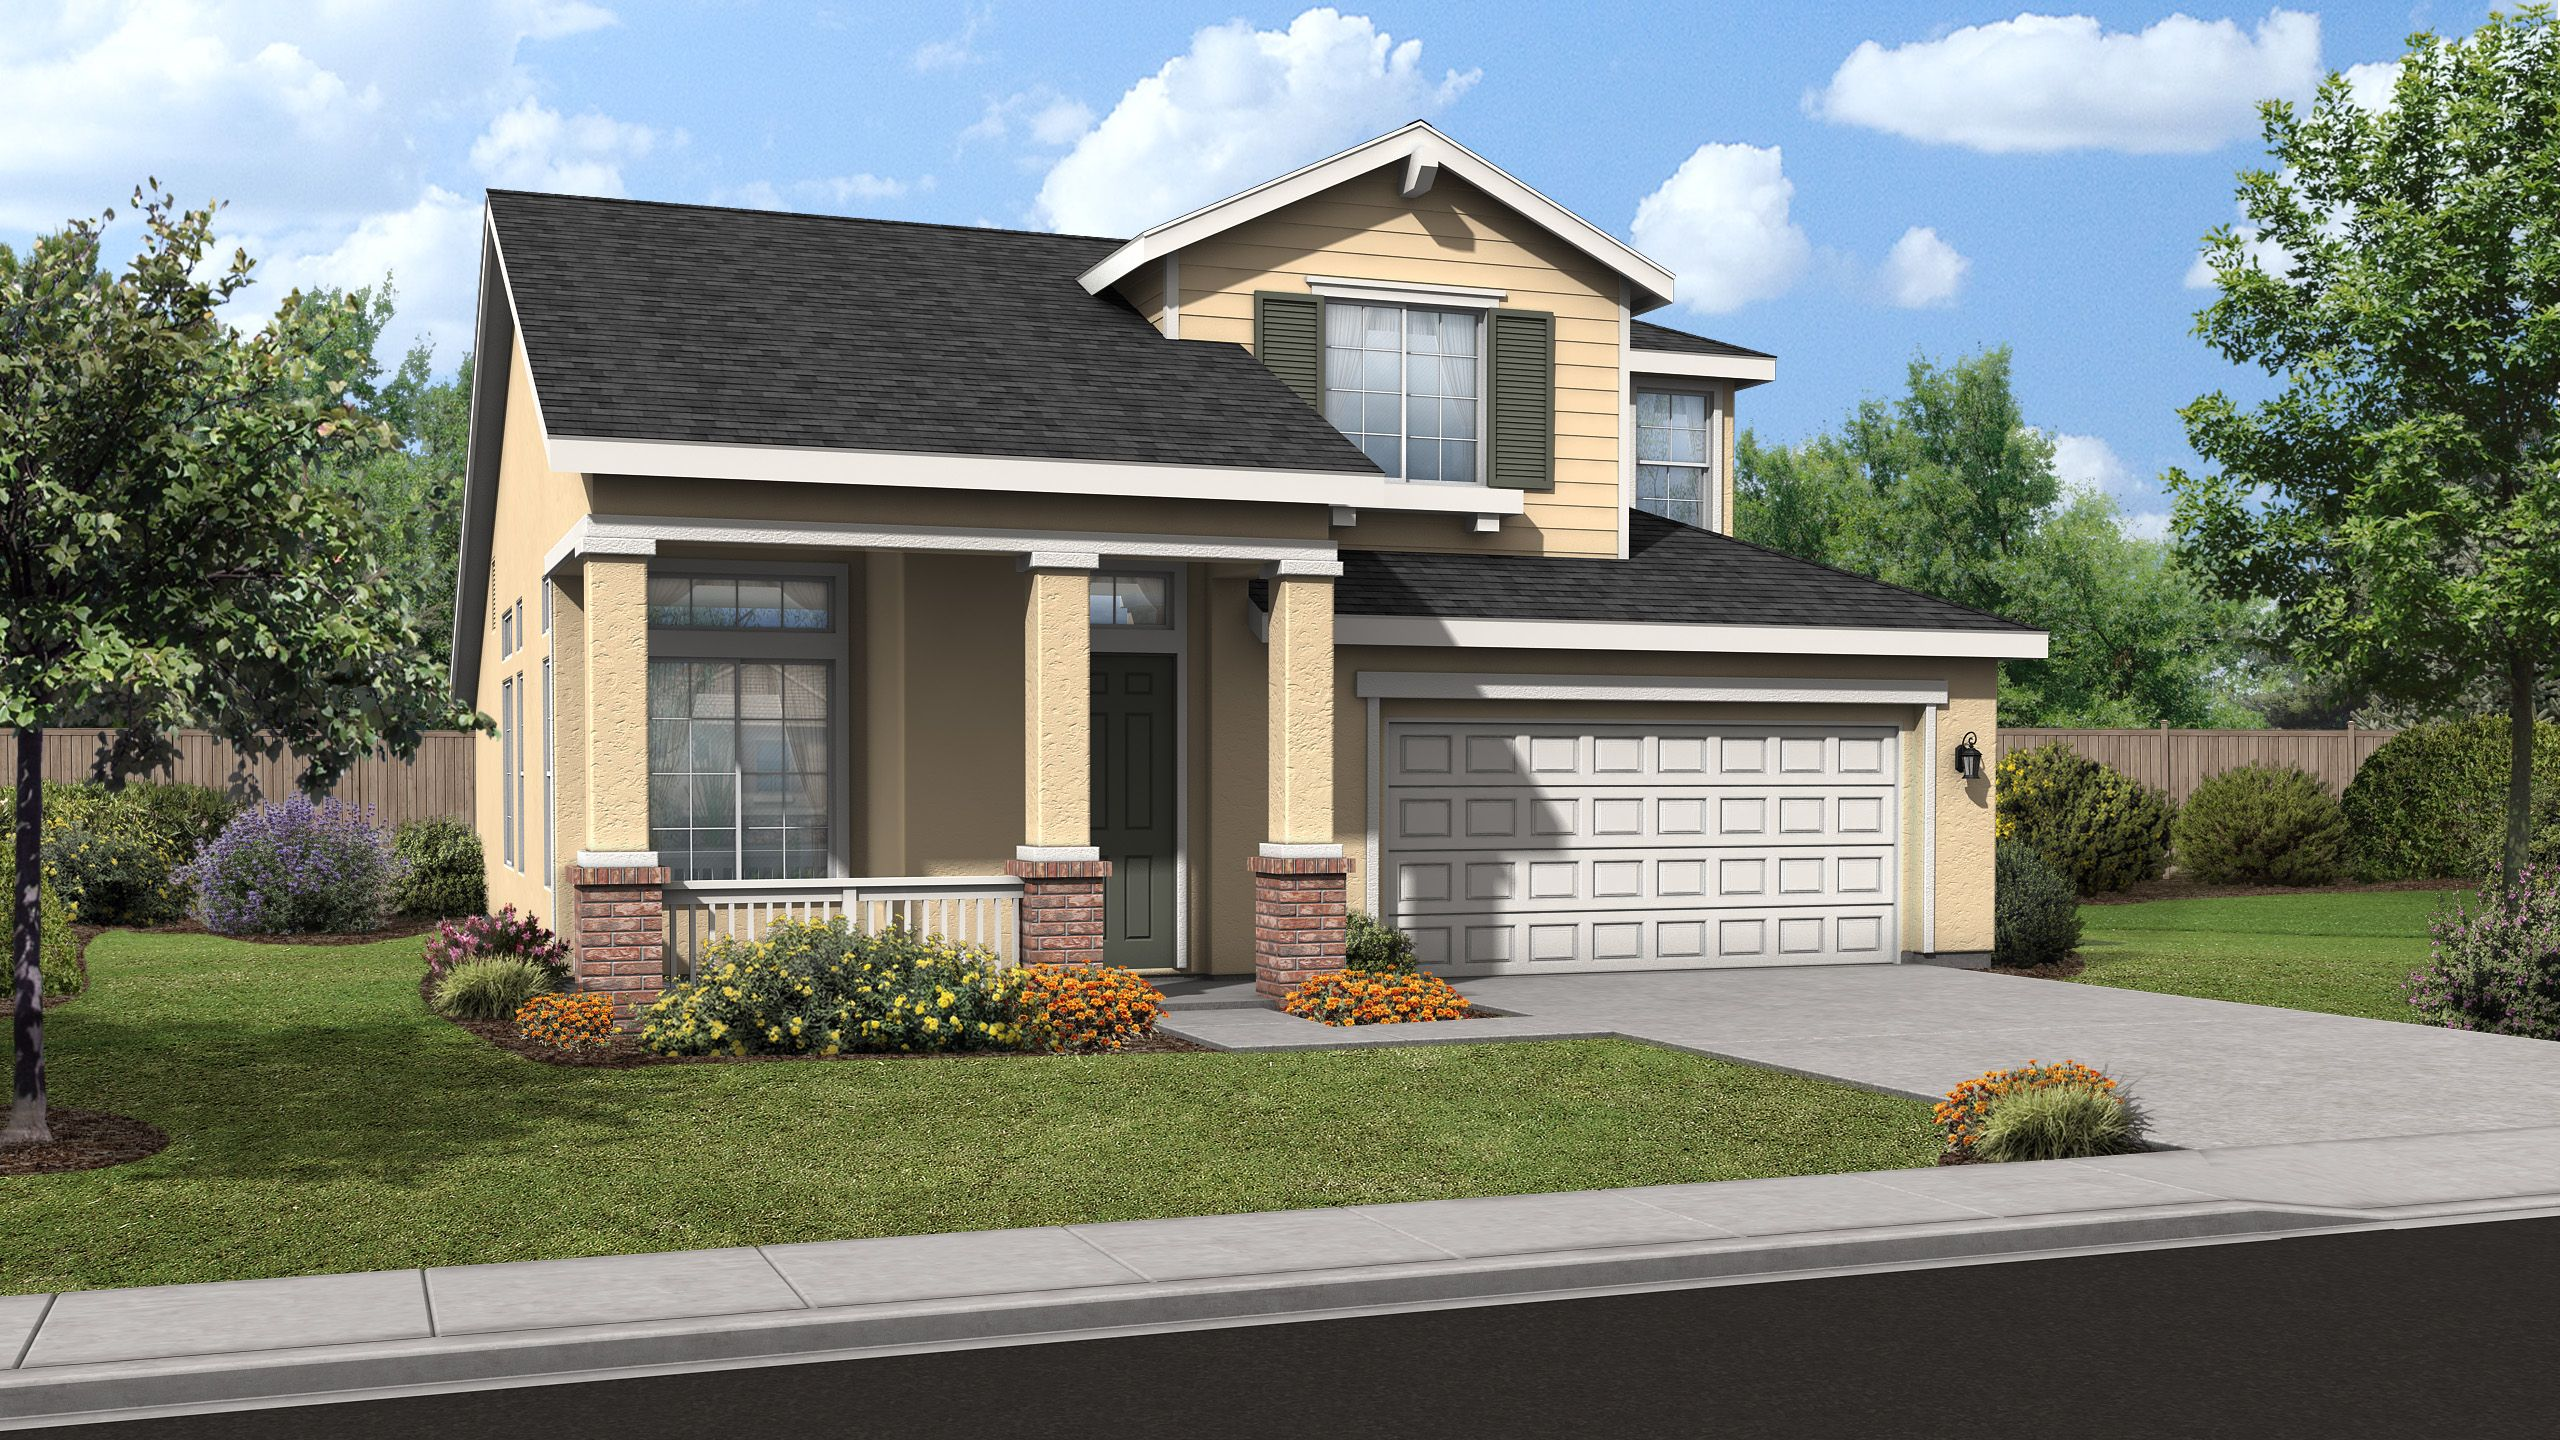 House for sale in modesto ca 28 images new homes for for House modesto